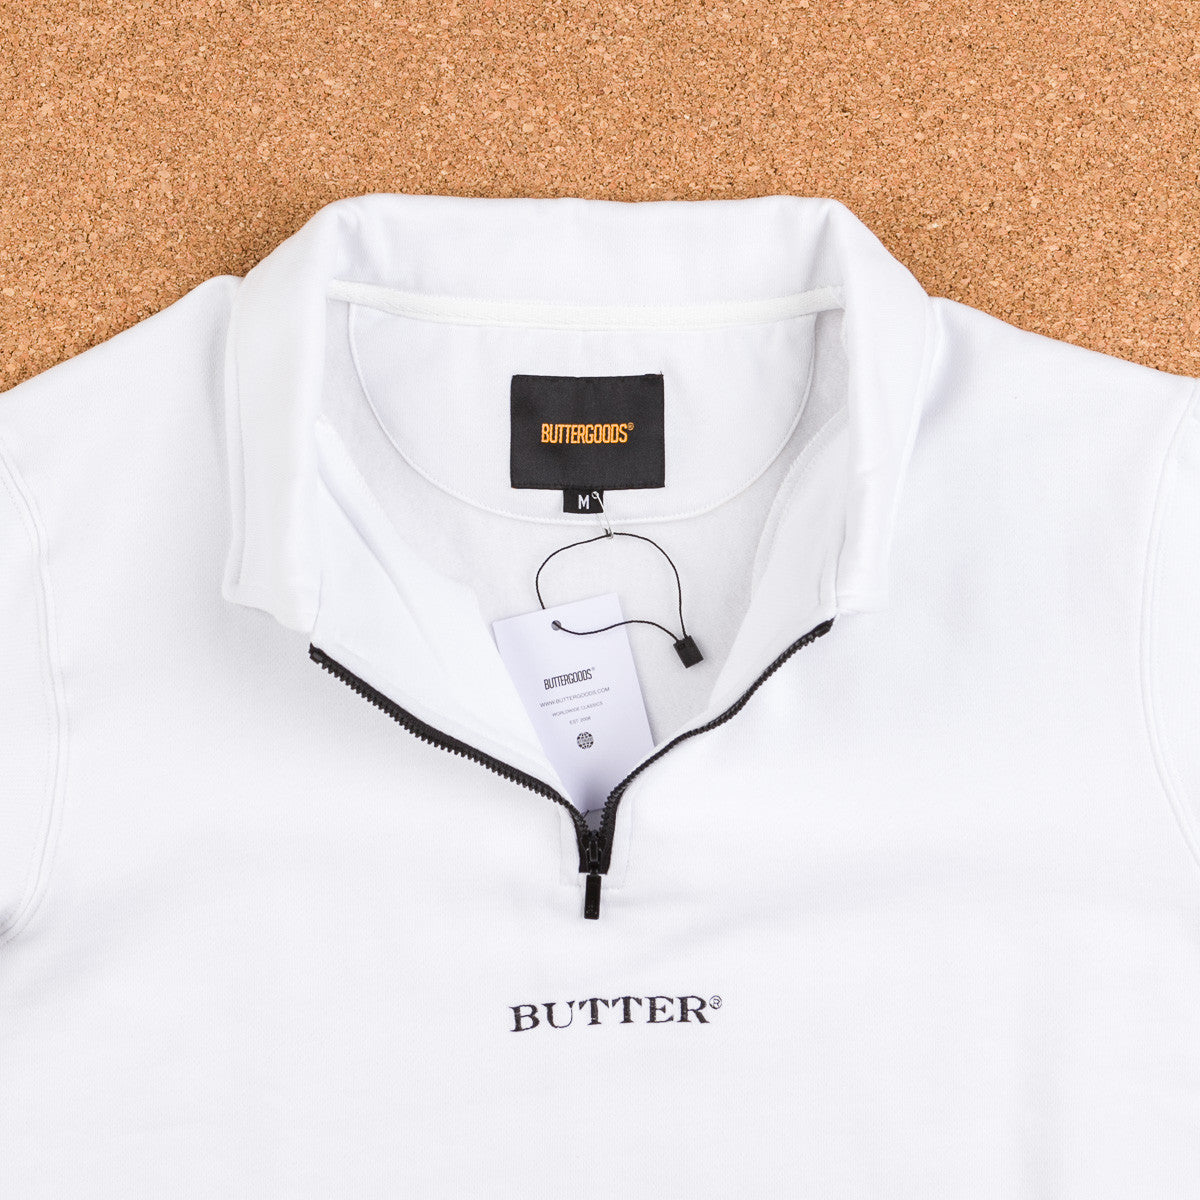 Butter Goods Milan 1/4 Zip Pullover Jacket - White